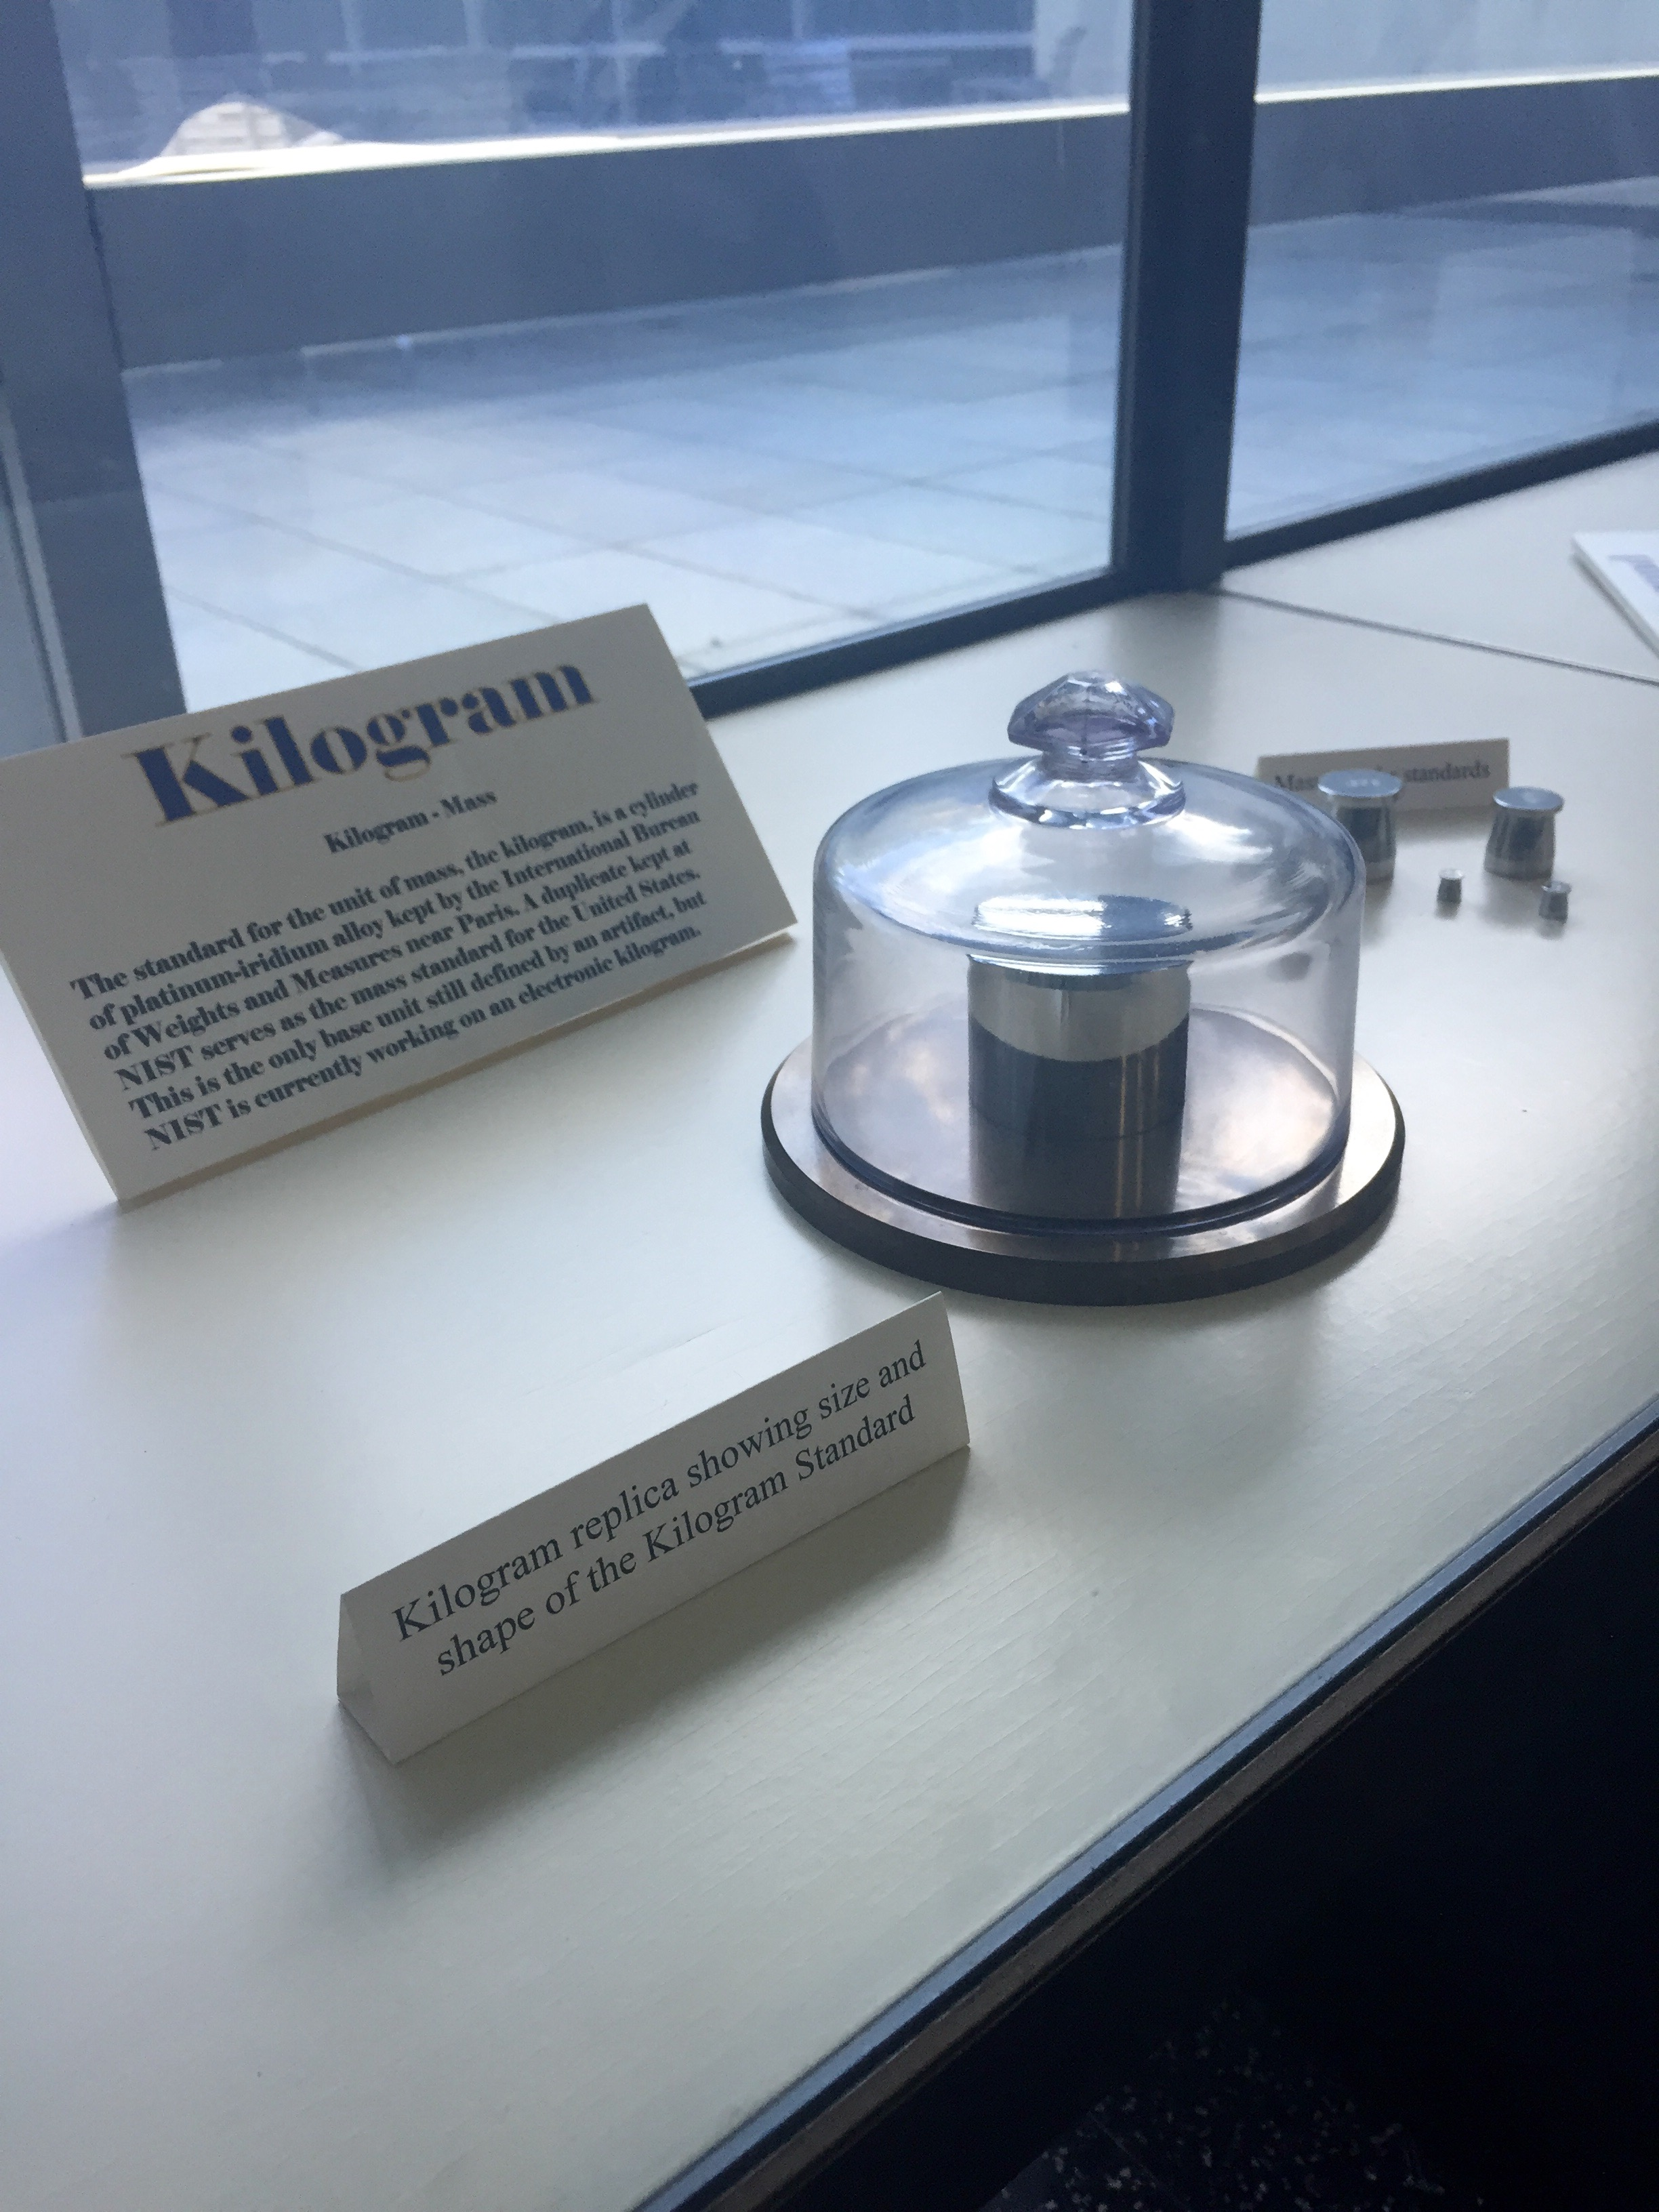 Replica of the International Prototype of the Kilogram.